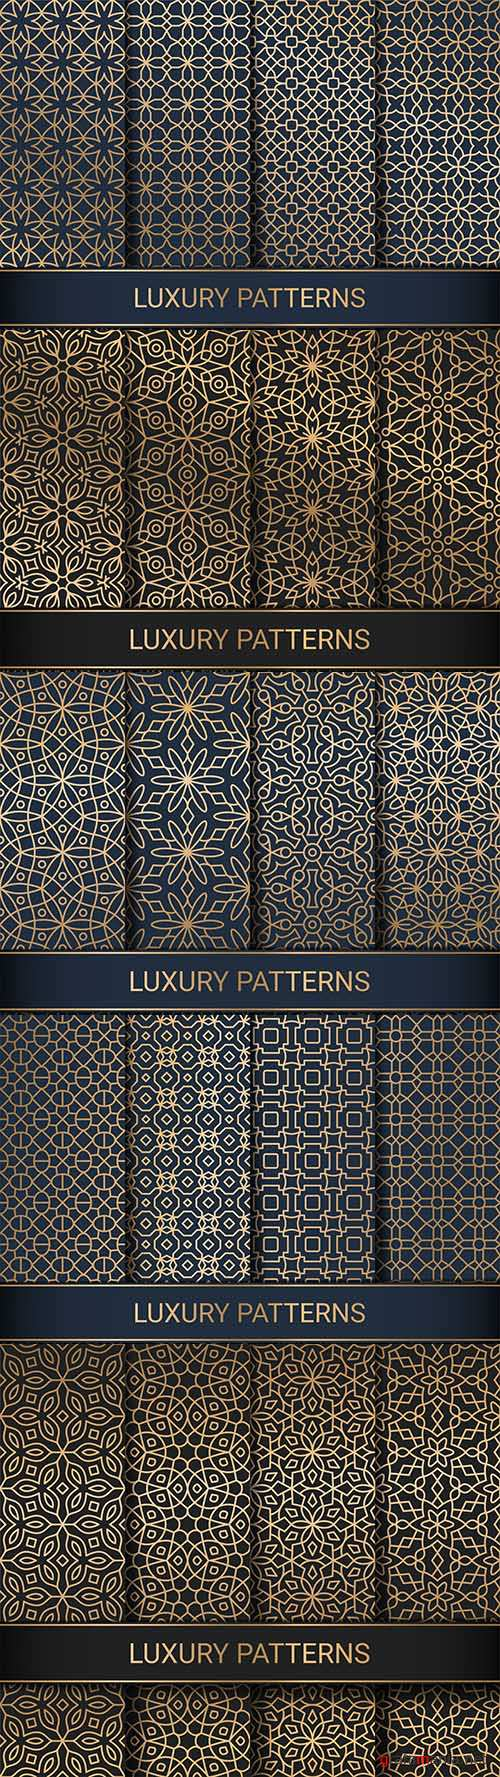 Luxury seamless decorative patterns for creativity